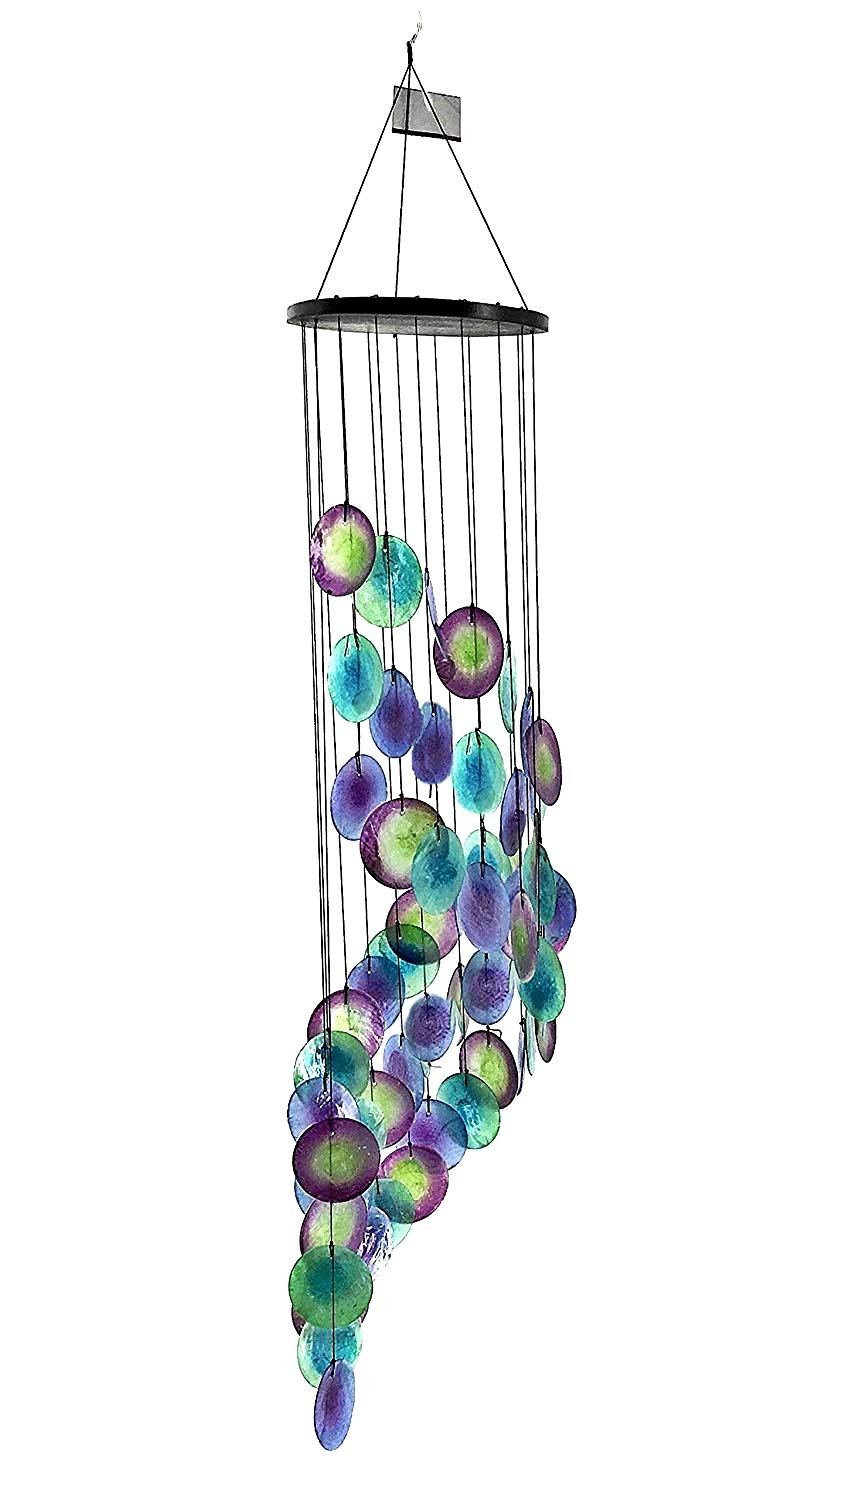 Bellaa 23332 Wind Chime Capiz Peacock Blue Handmade by Villagers 25'' x 6''